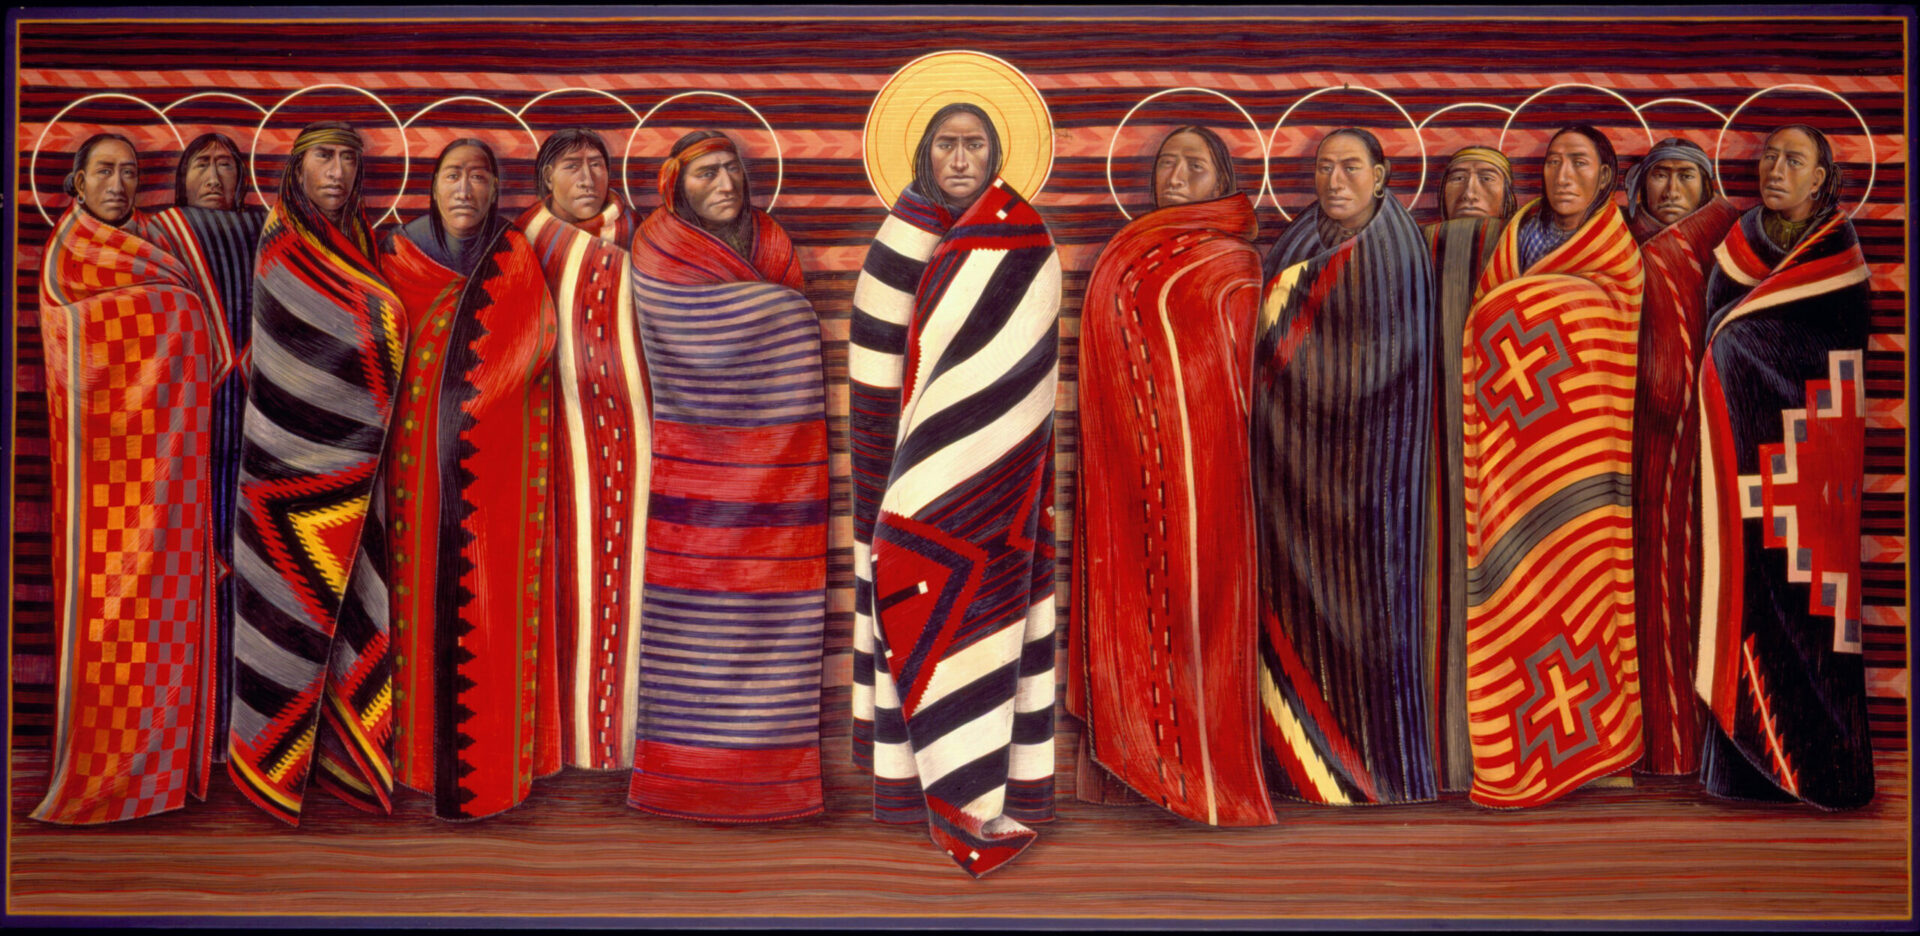 Jesus and the diciples Native American Art by Fr. John Giuliani